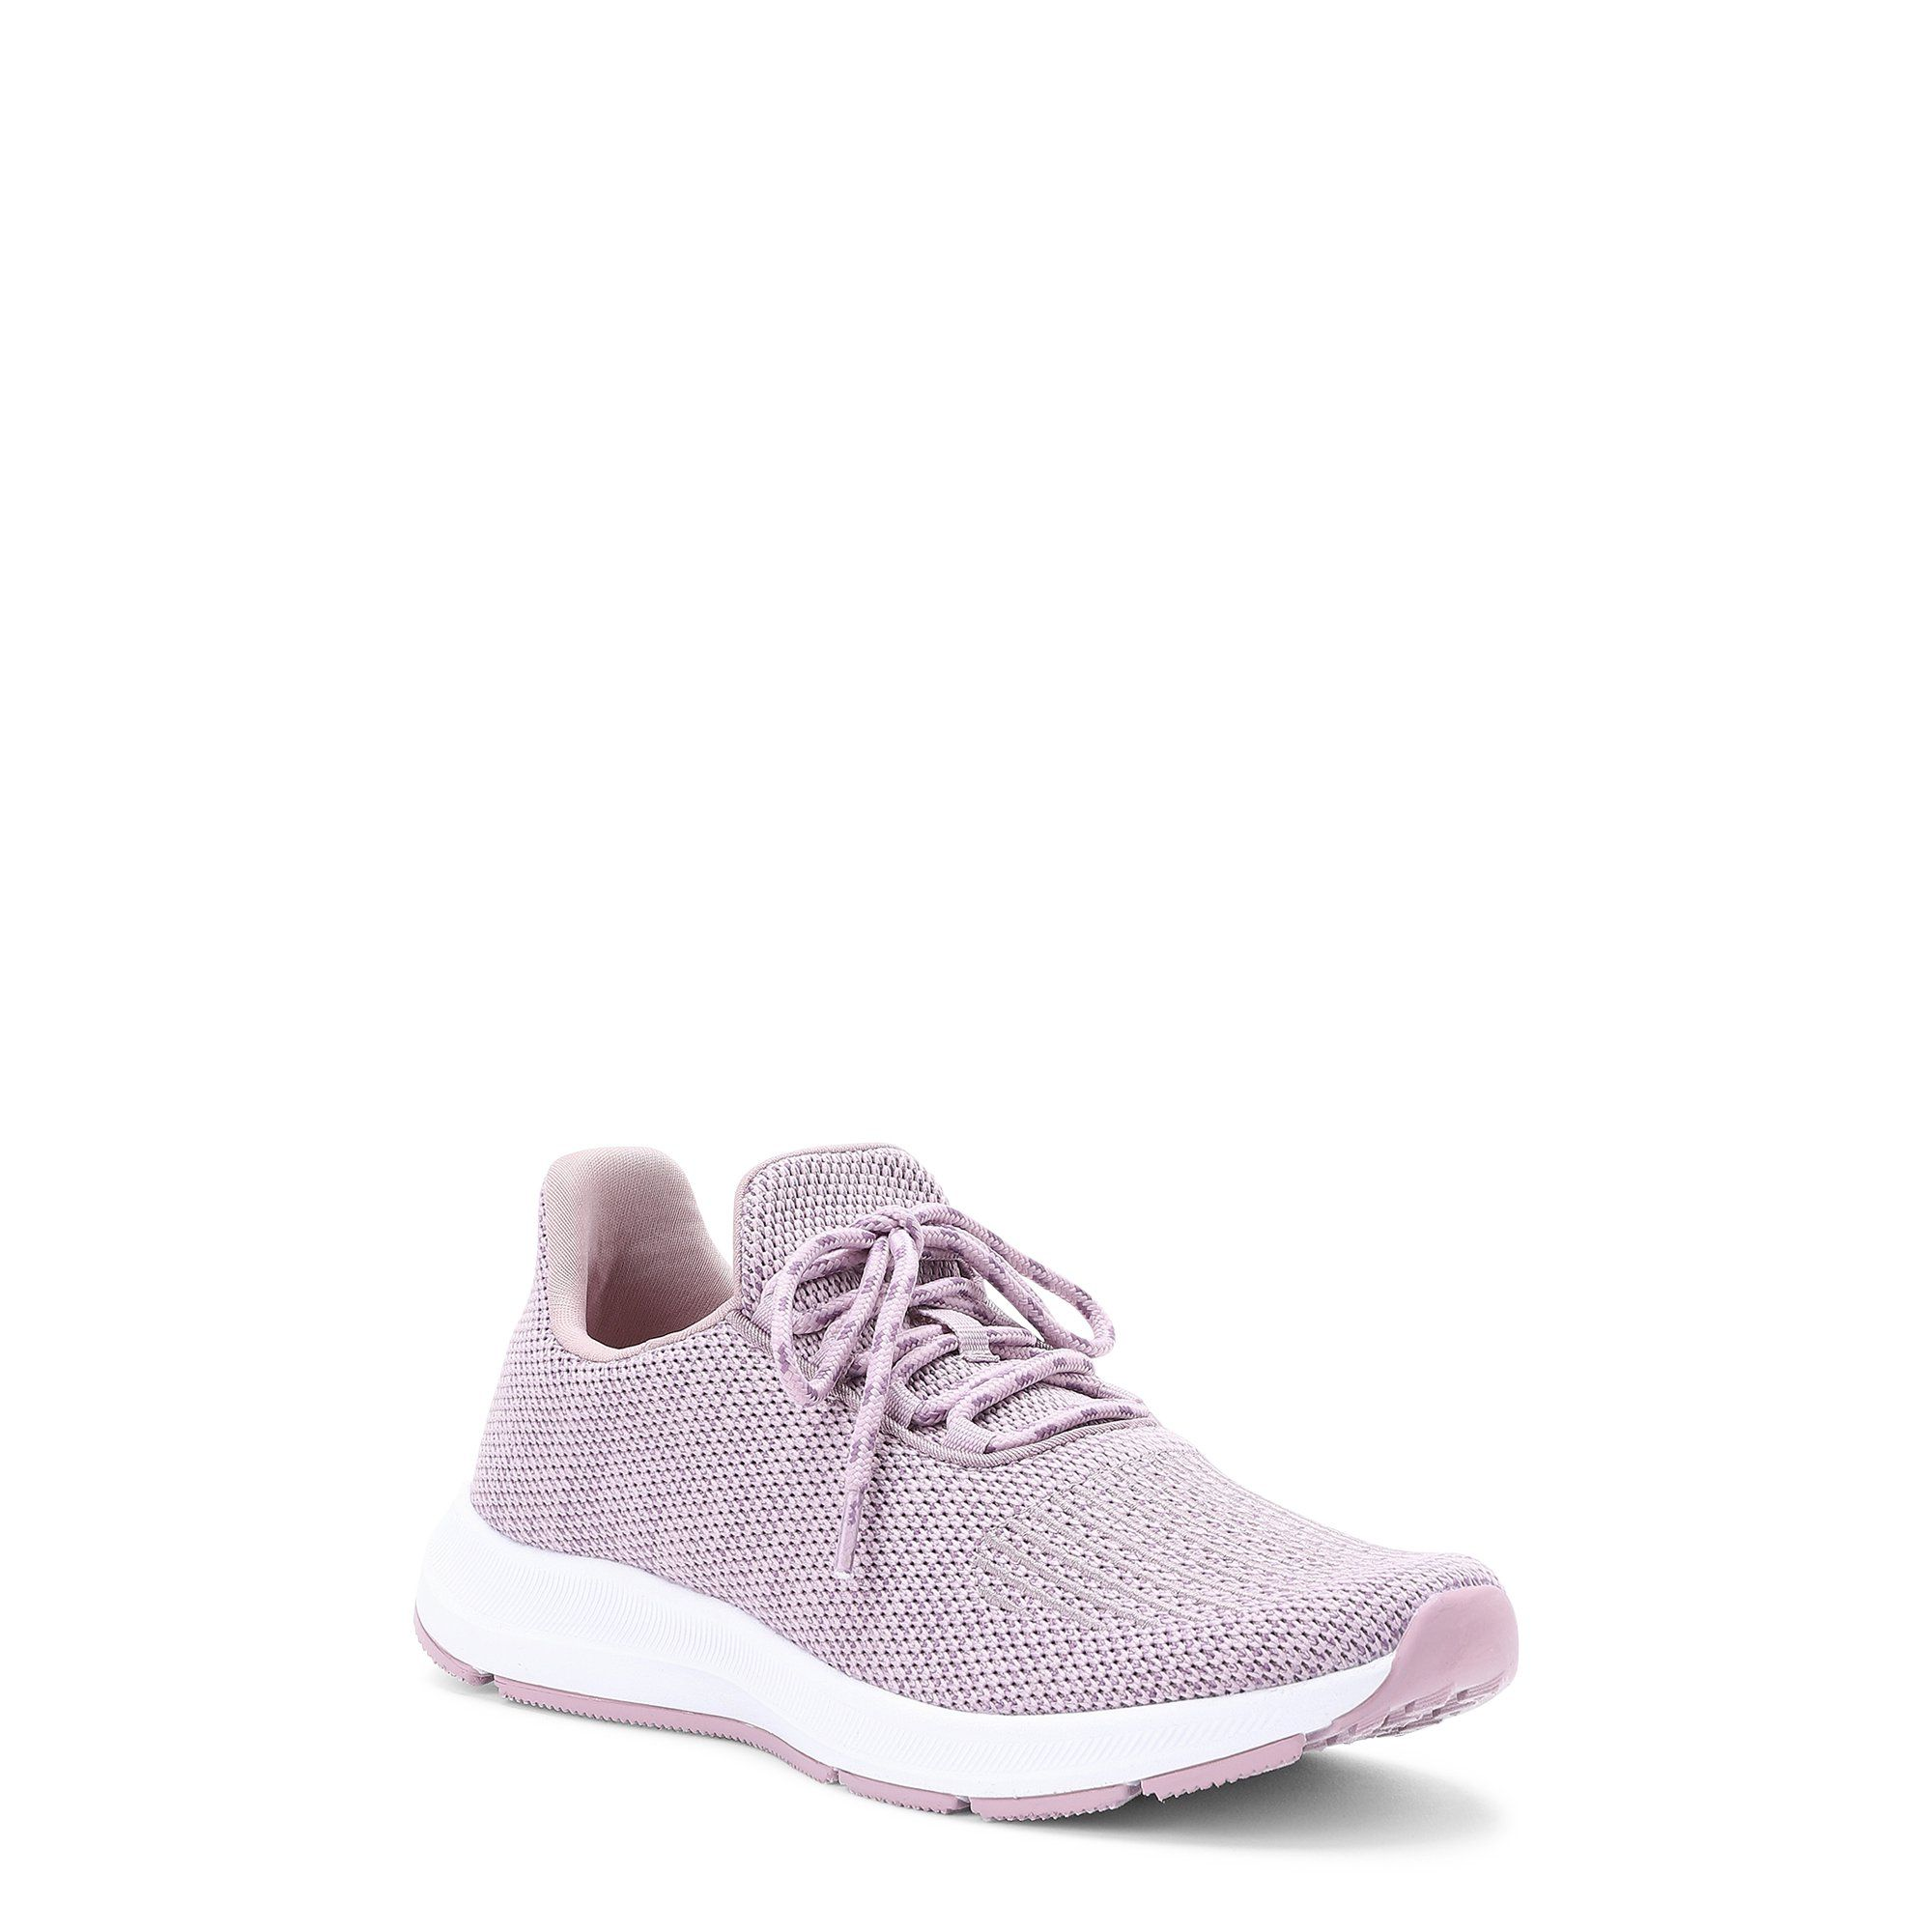 Athletic Works Women S Athletic Works Soft Running Sneaker Walmart Com In 2020 Athletic Works Running Sneakers Athletic Women